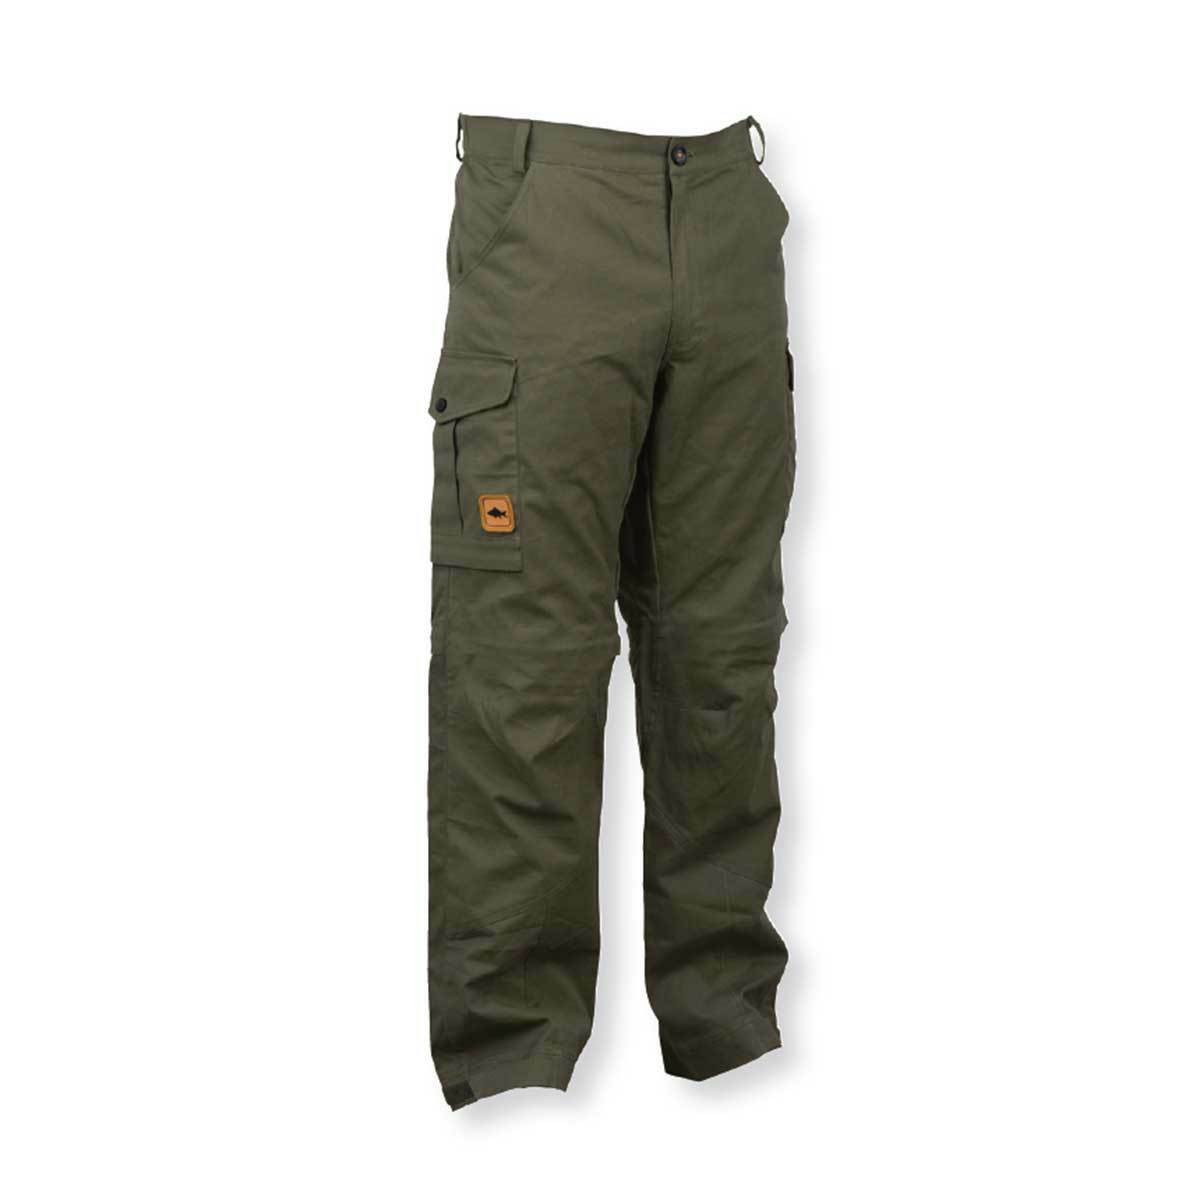 Prologic NEW Fishing Green Water Repellent Cargo Trousers All Sizes